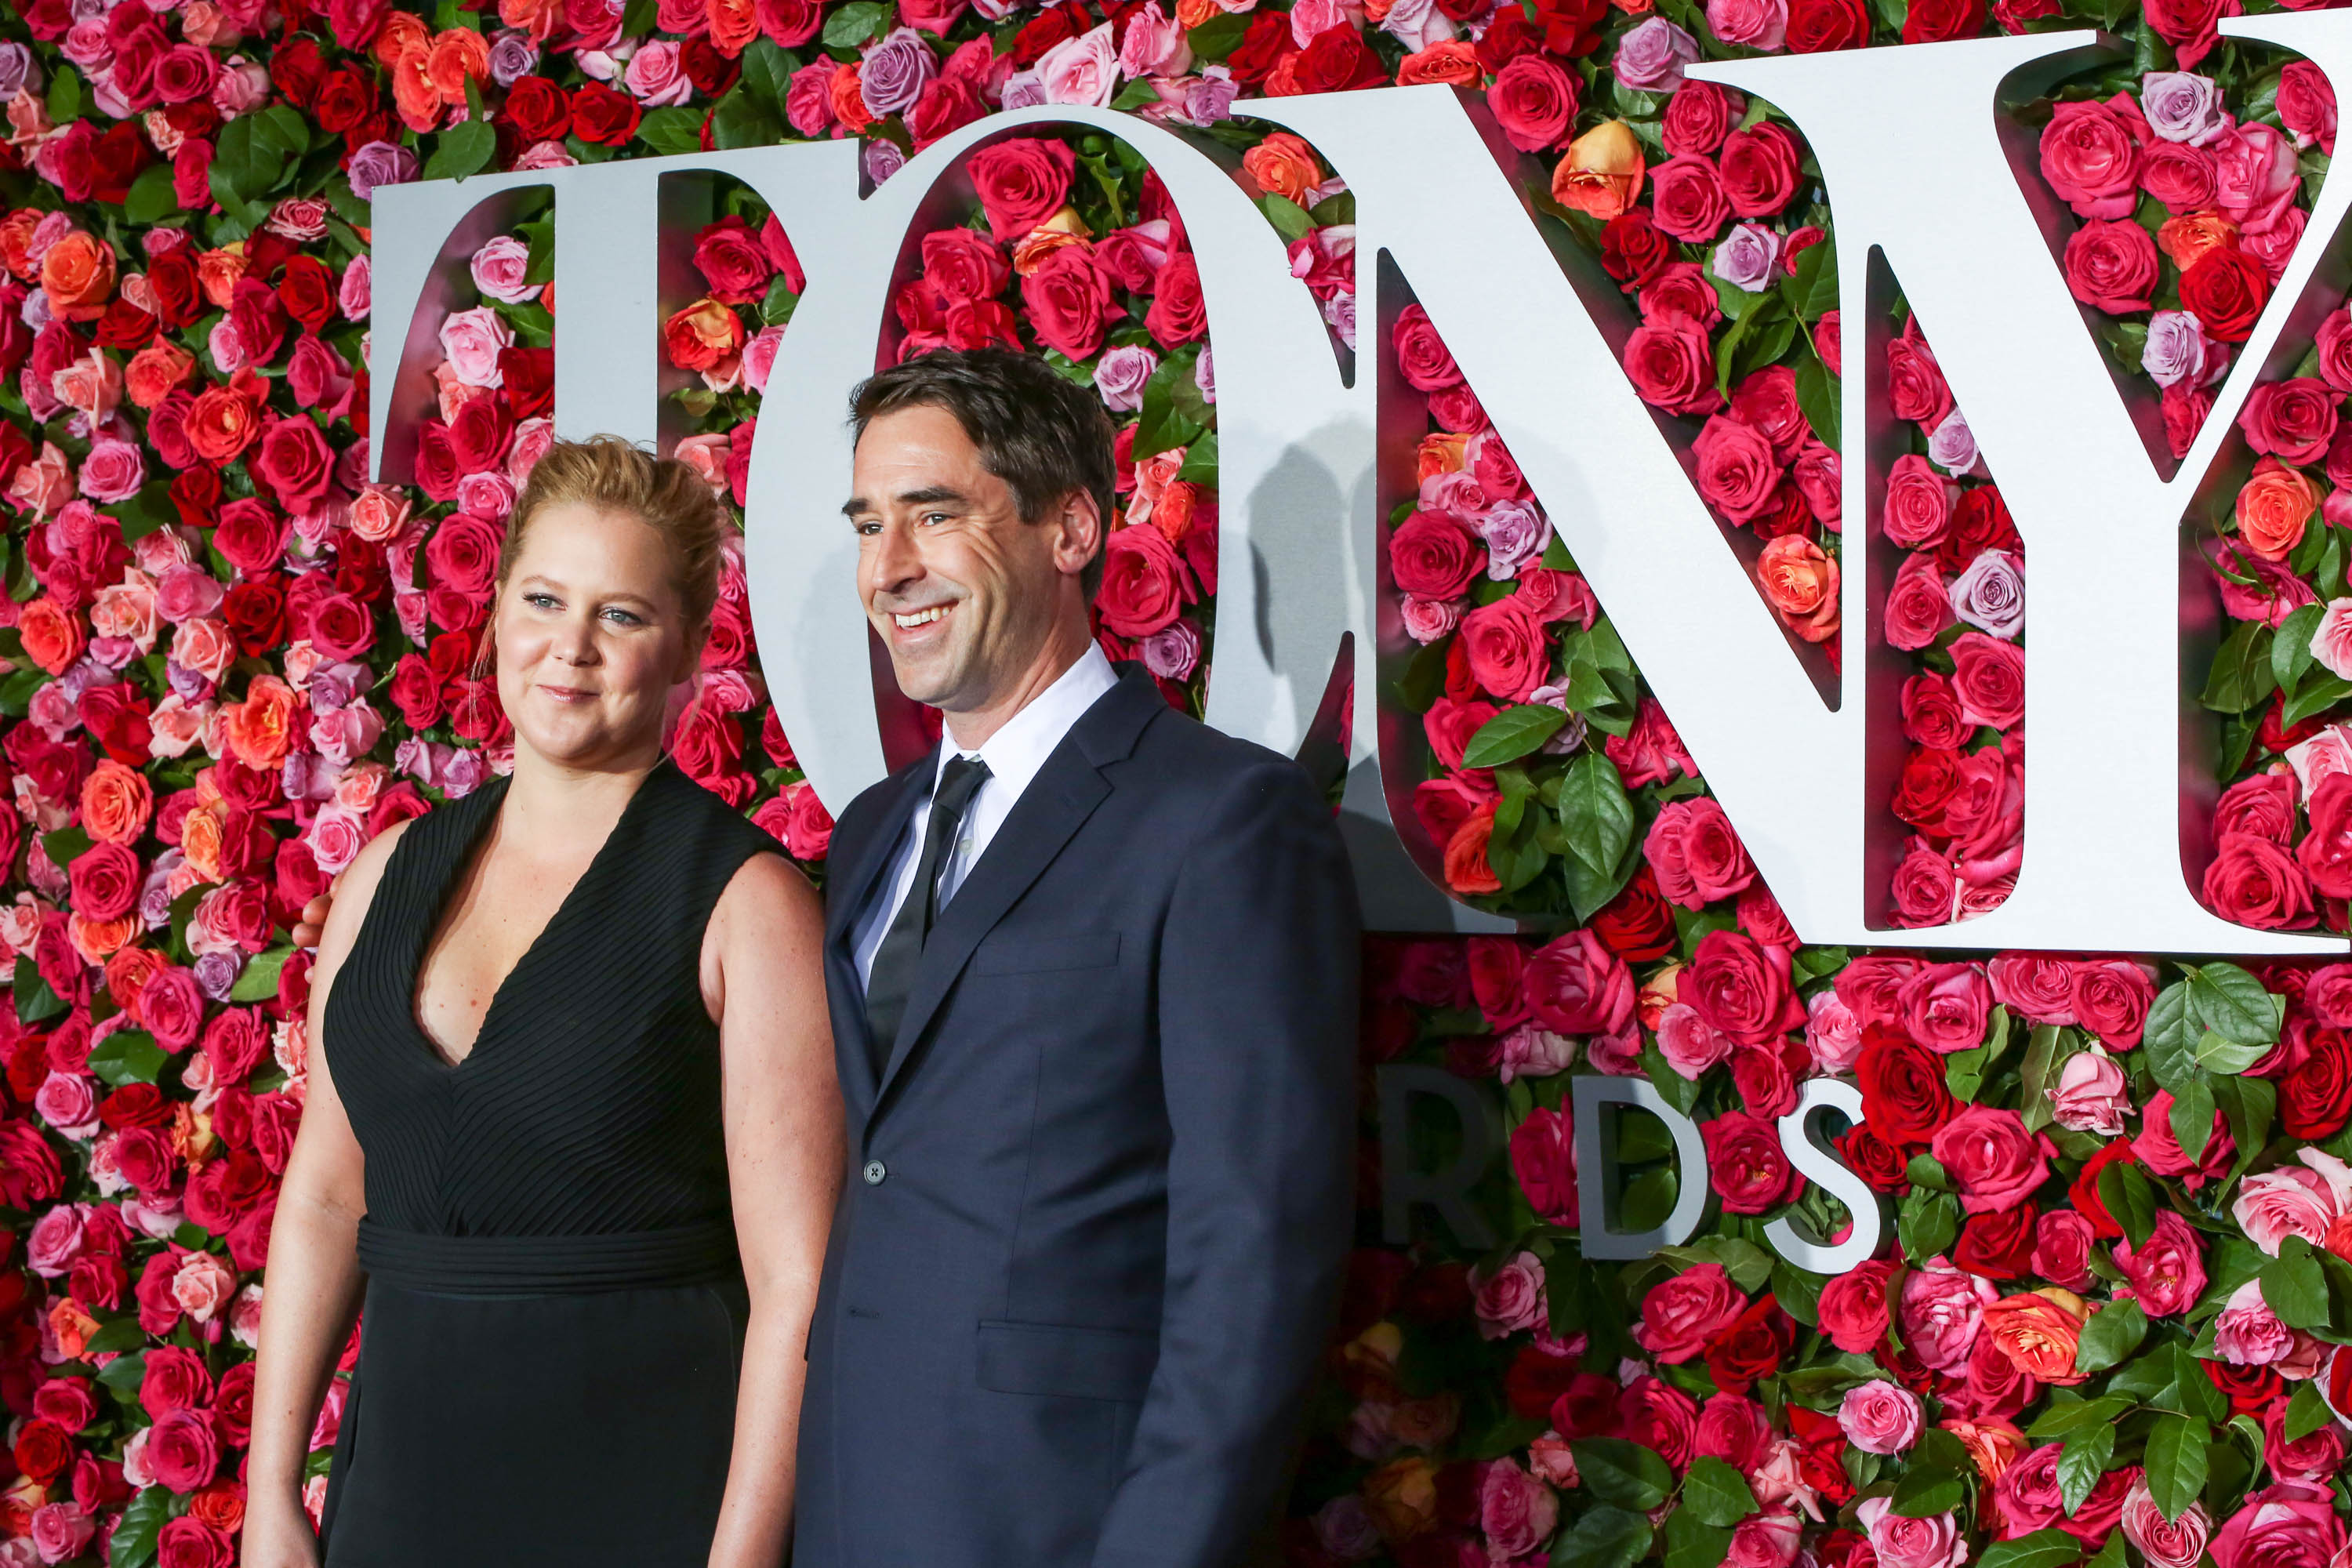 Discussion on this topic: Amy Schumer Claps Back at Perez Hilton , amy-schumer-claps-back-at-perez-hilton/